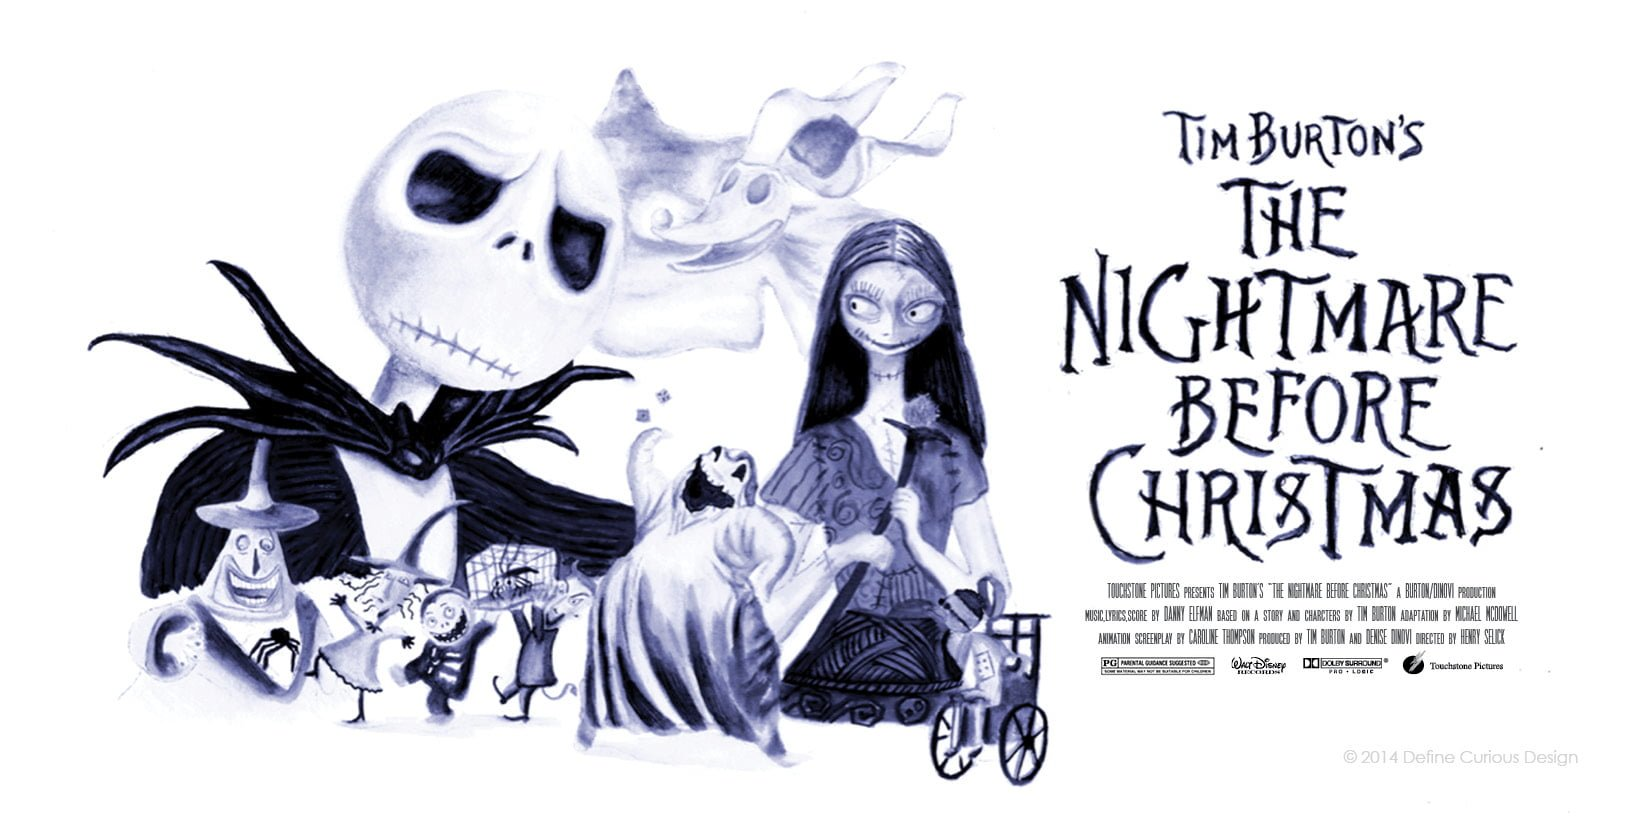 The Nightmare Before Christmas – Halloween or Christmas film?